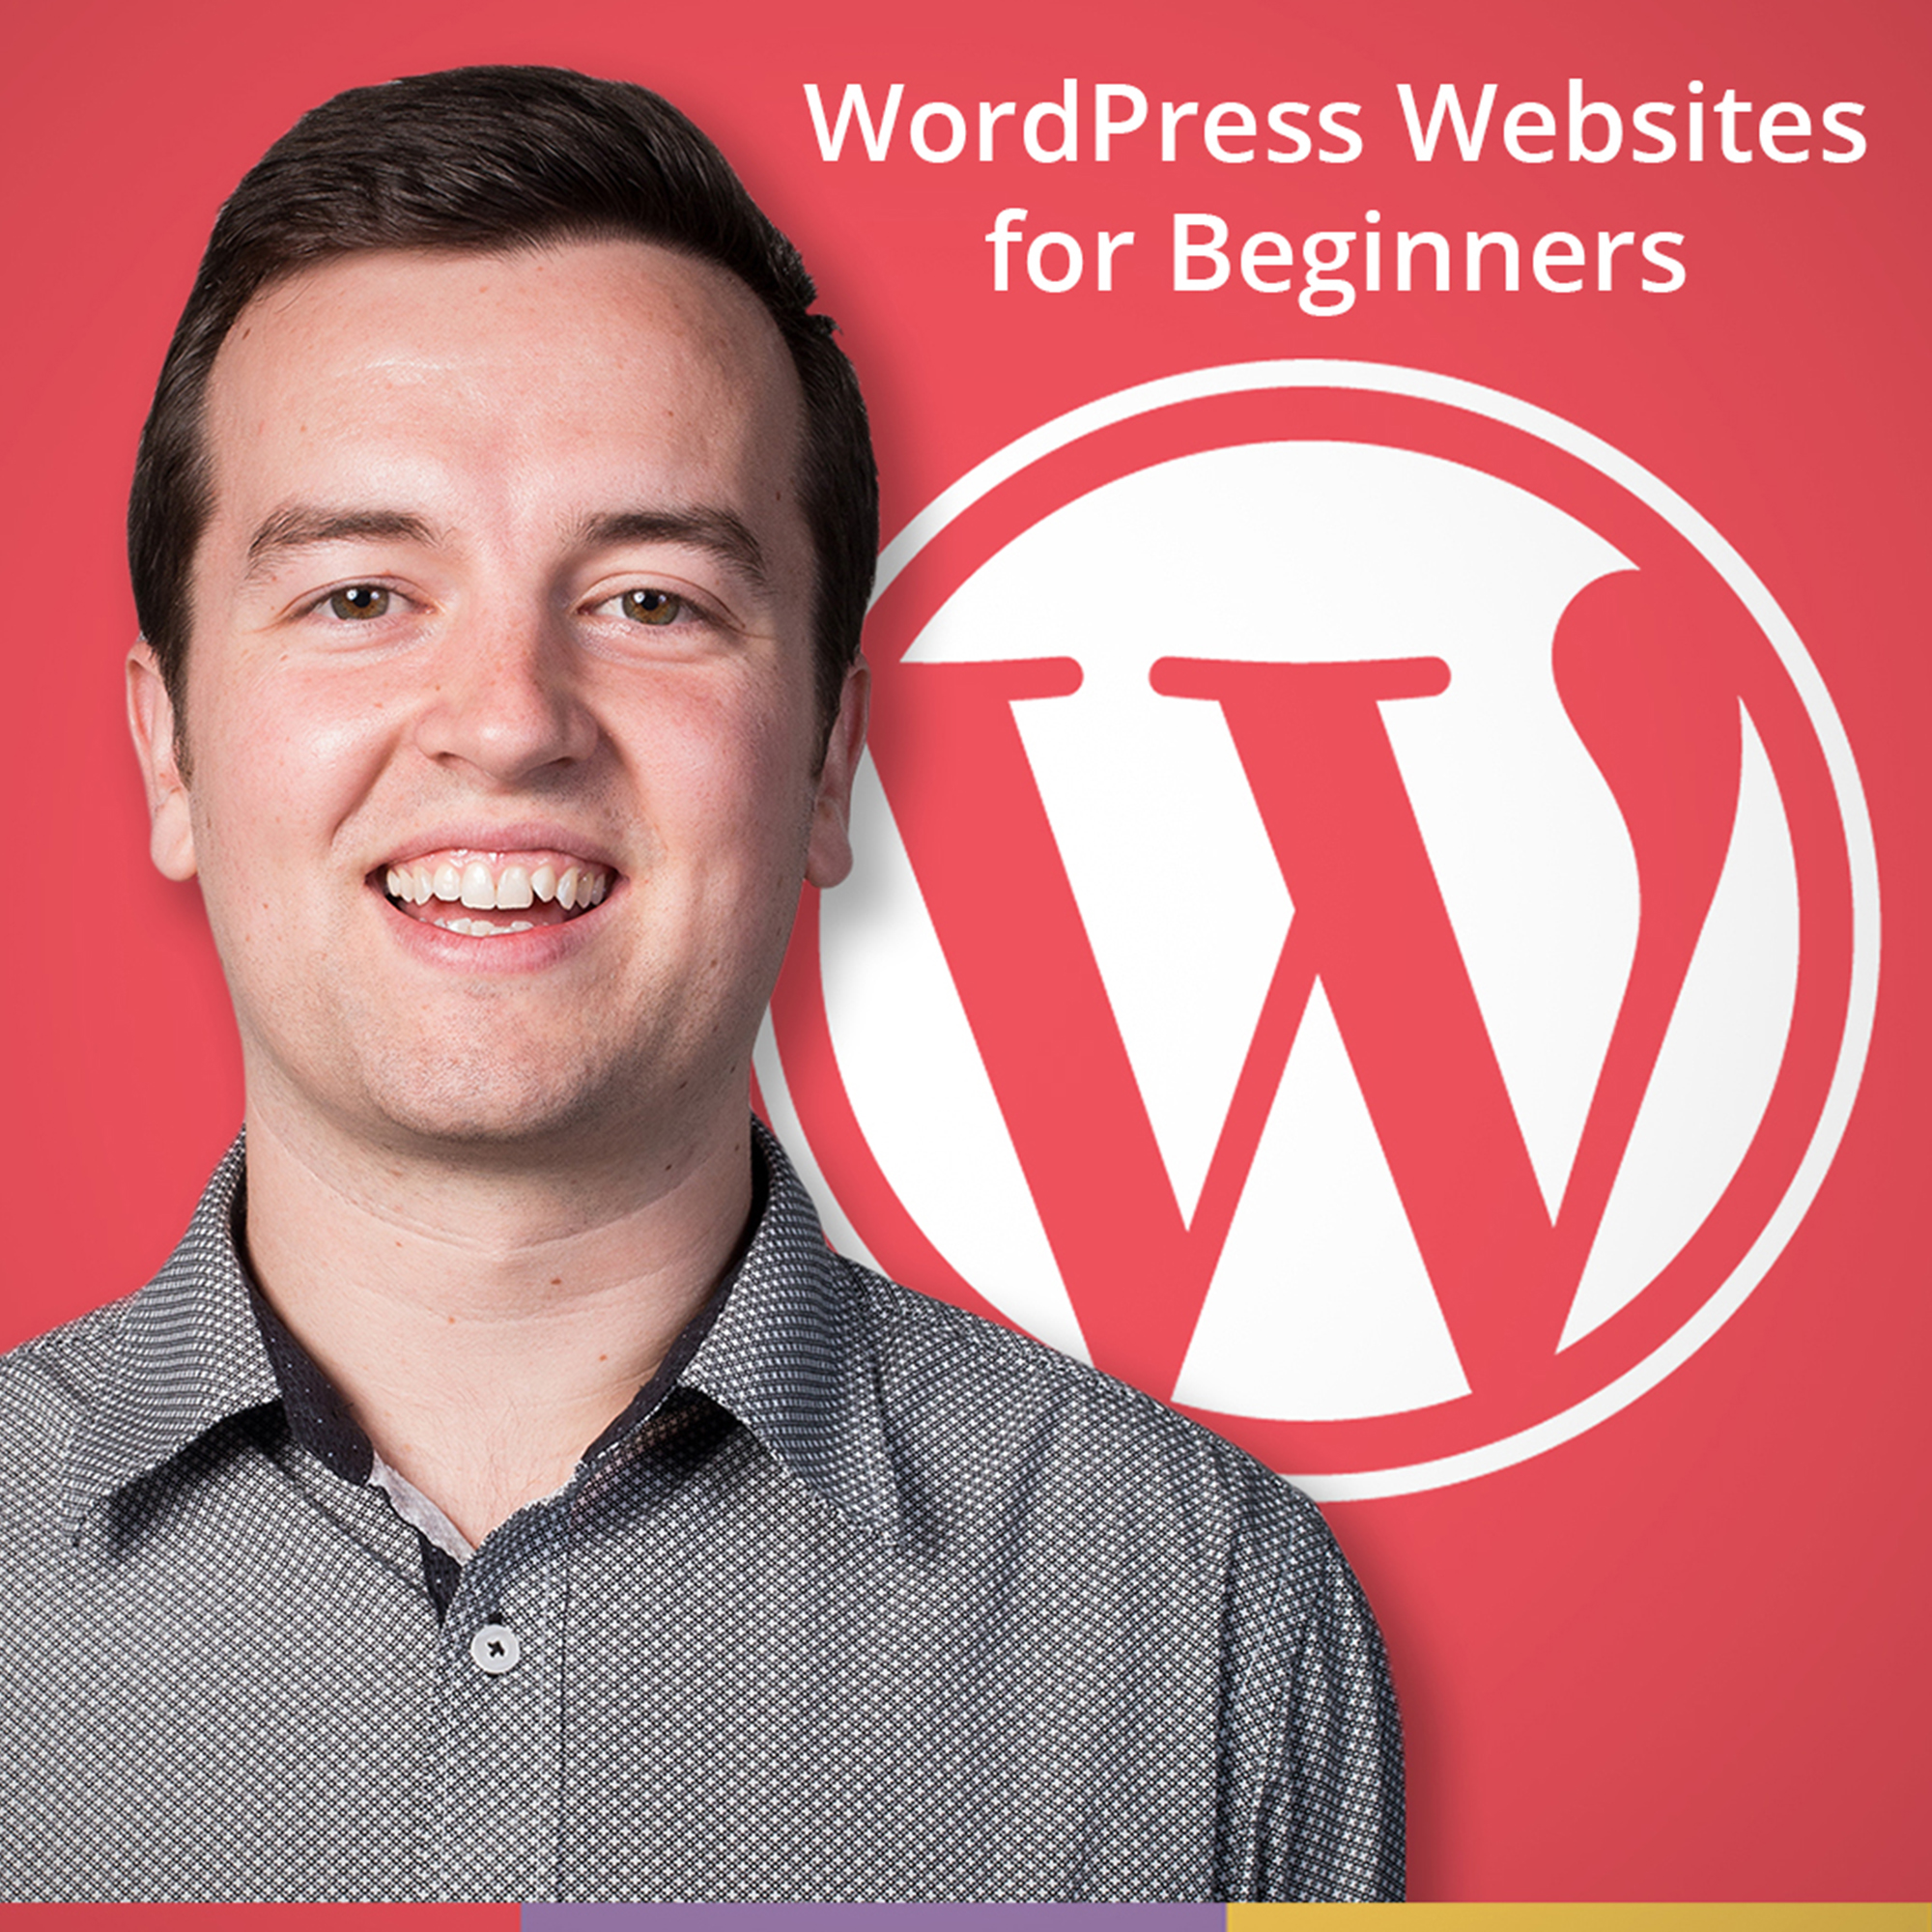 WordPress Websites for Beginners (online video course) [Online Code] by Video School Online